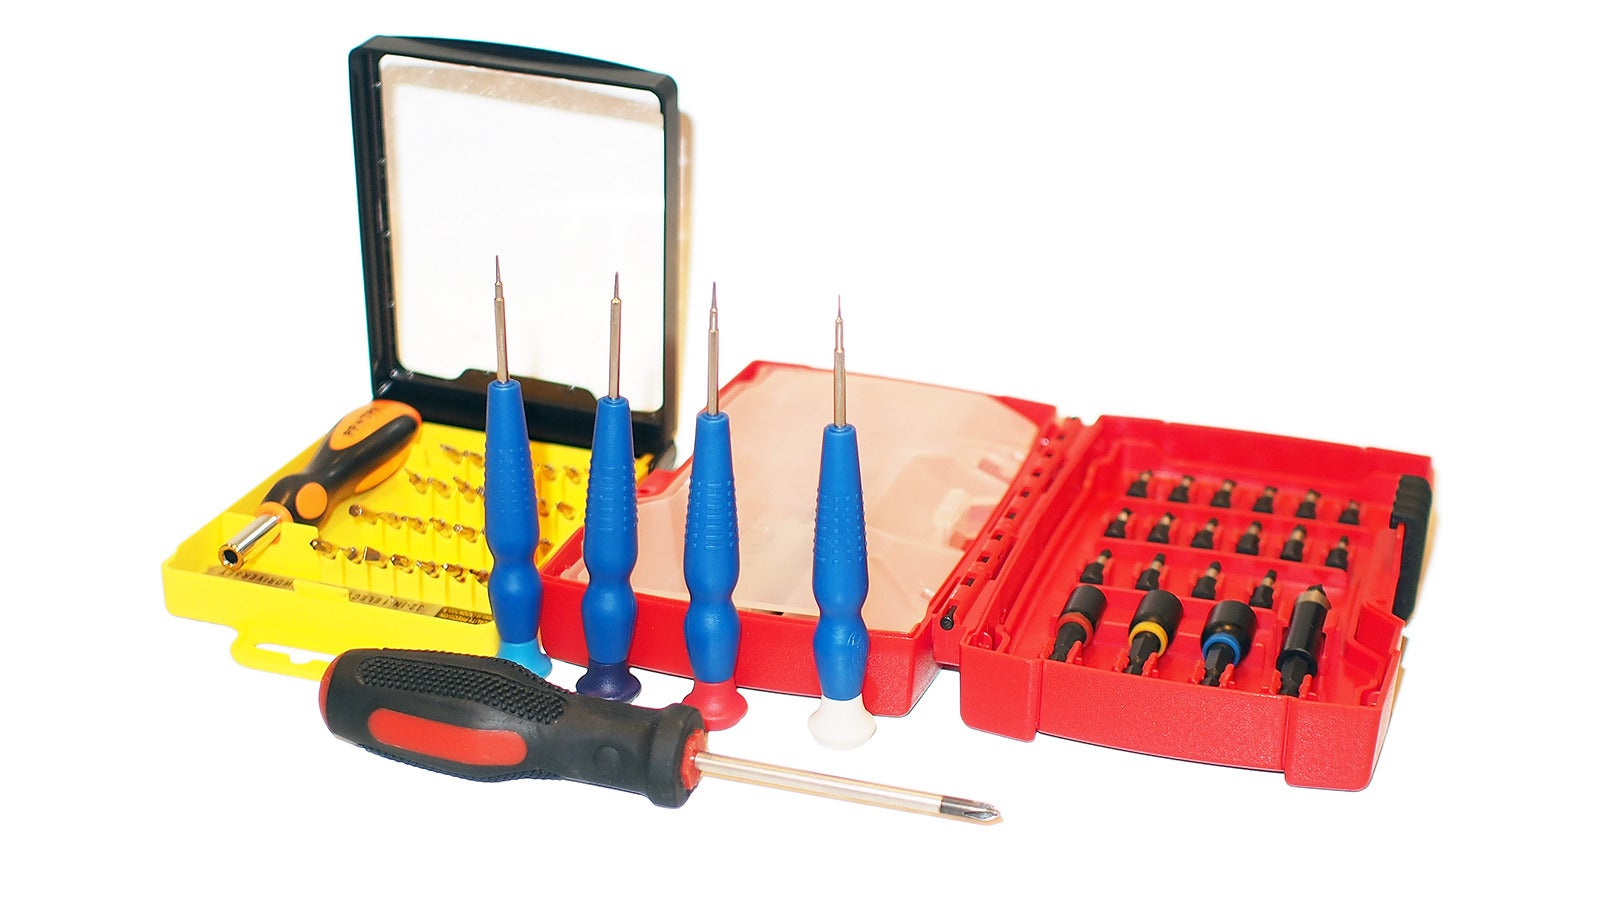 Repair Fixing Essential Tools For Building Repairing And Upgrading Pcs And